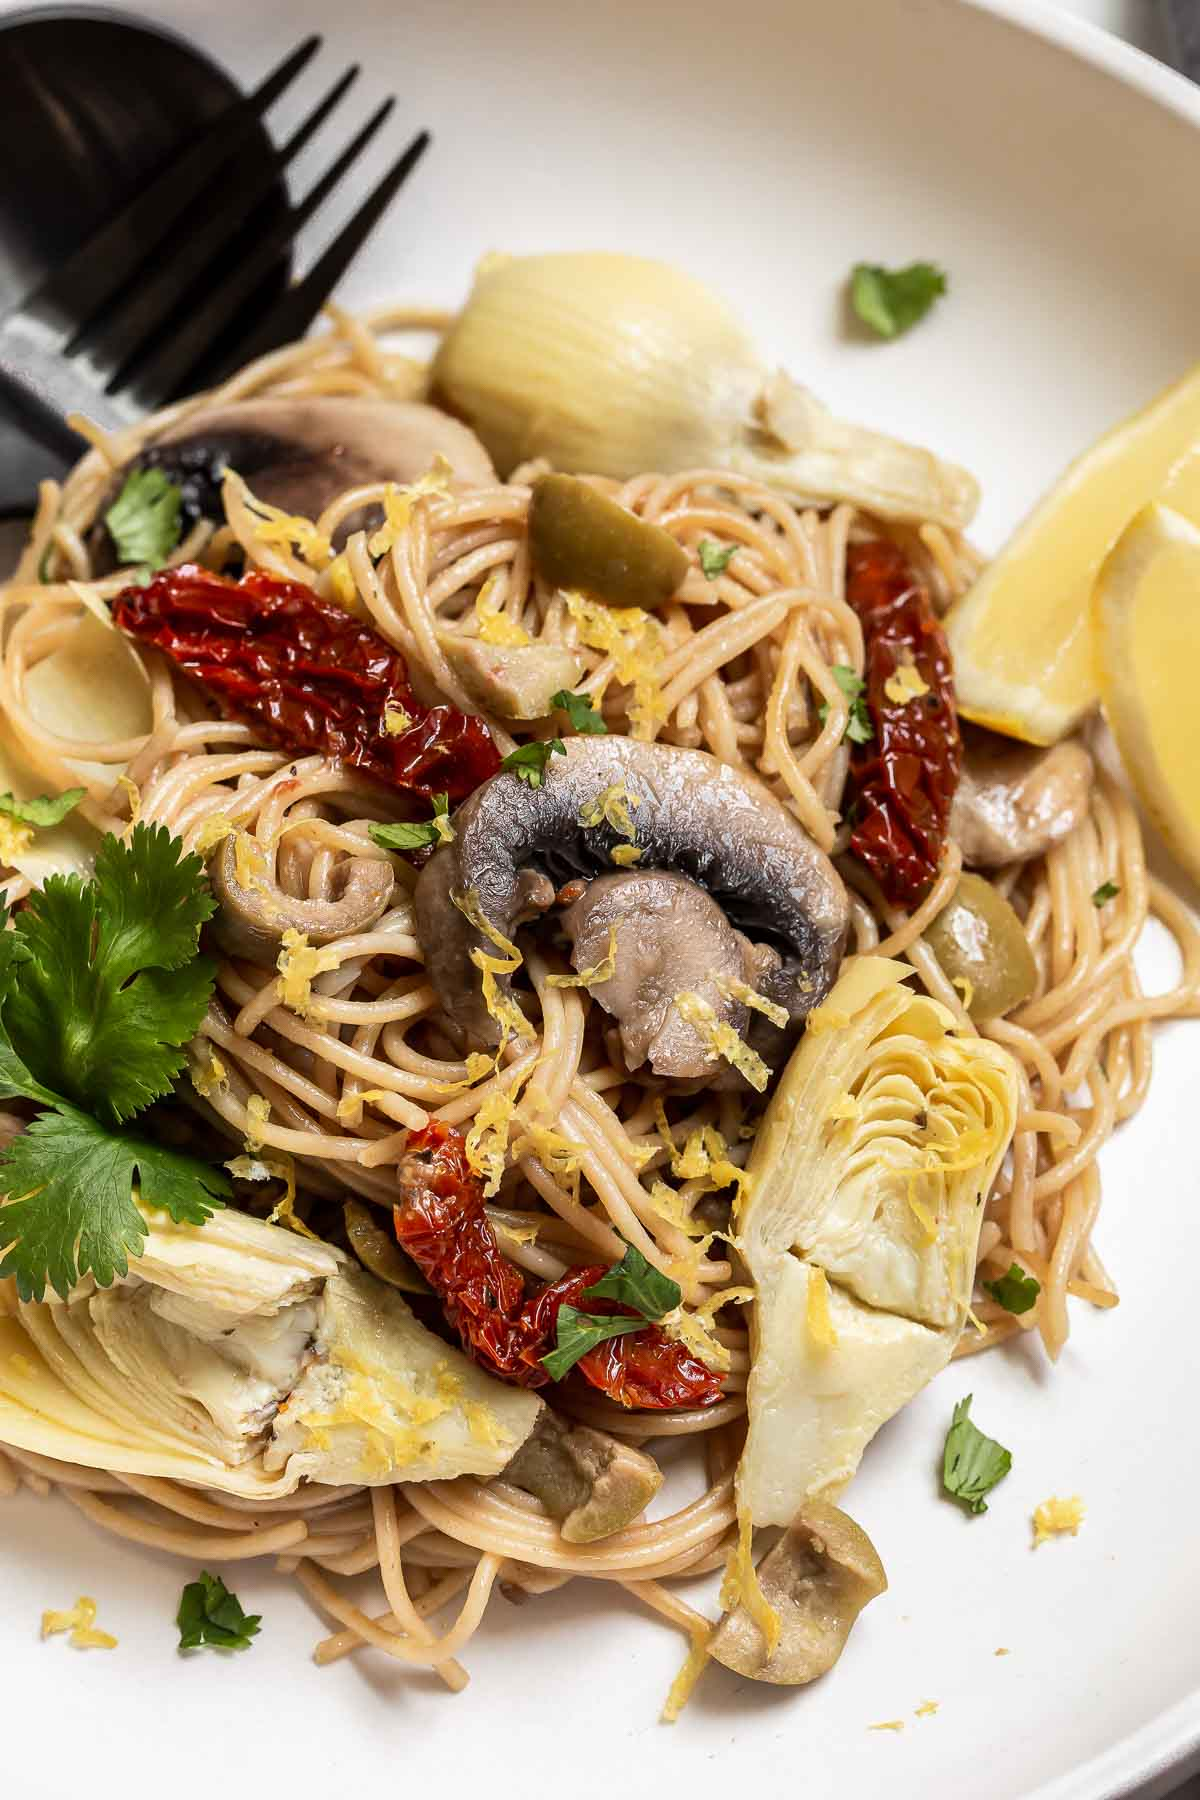 Pasta with sundried tomatoes and mushrooms on plate.